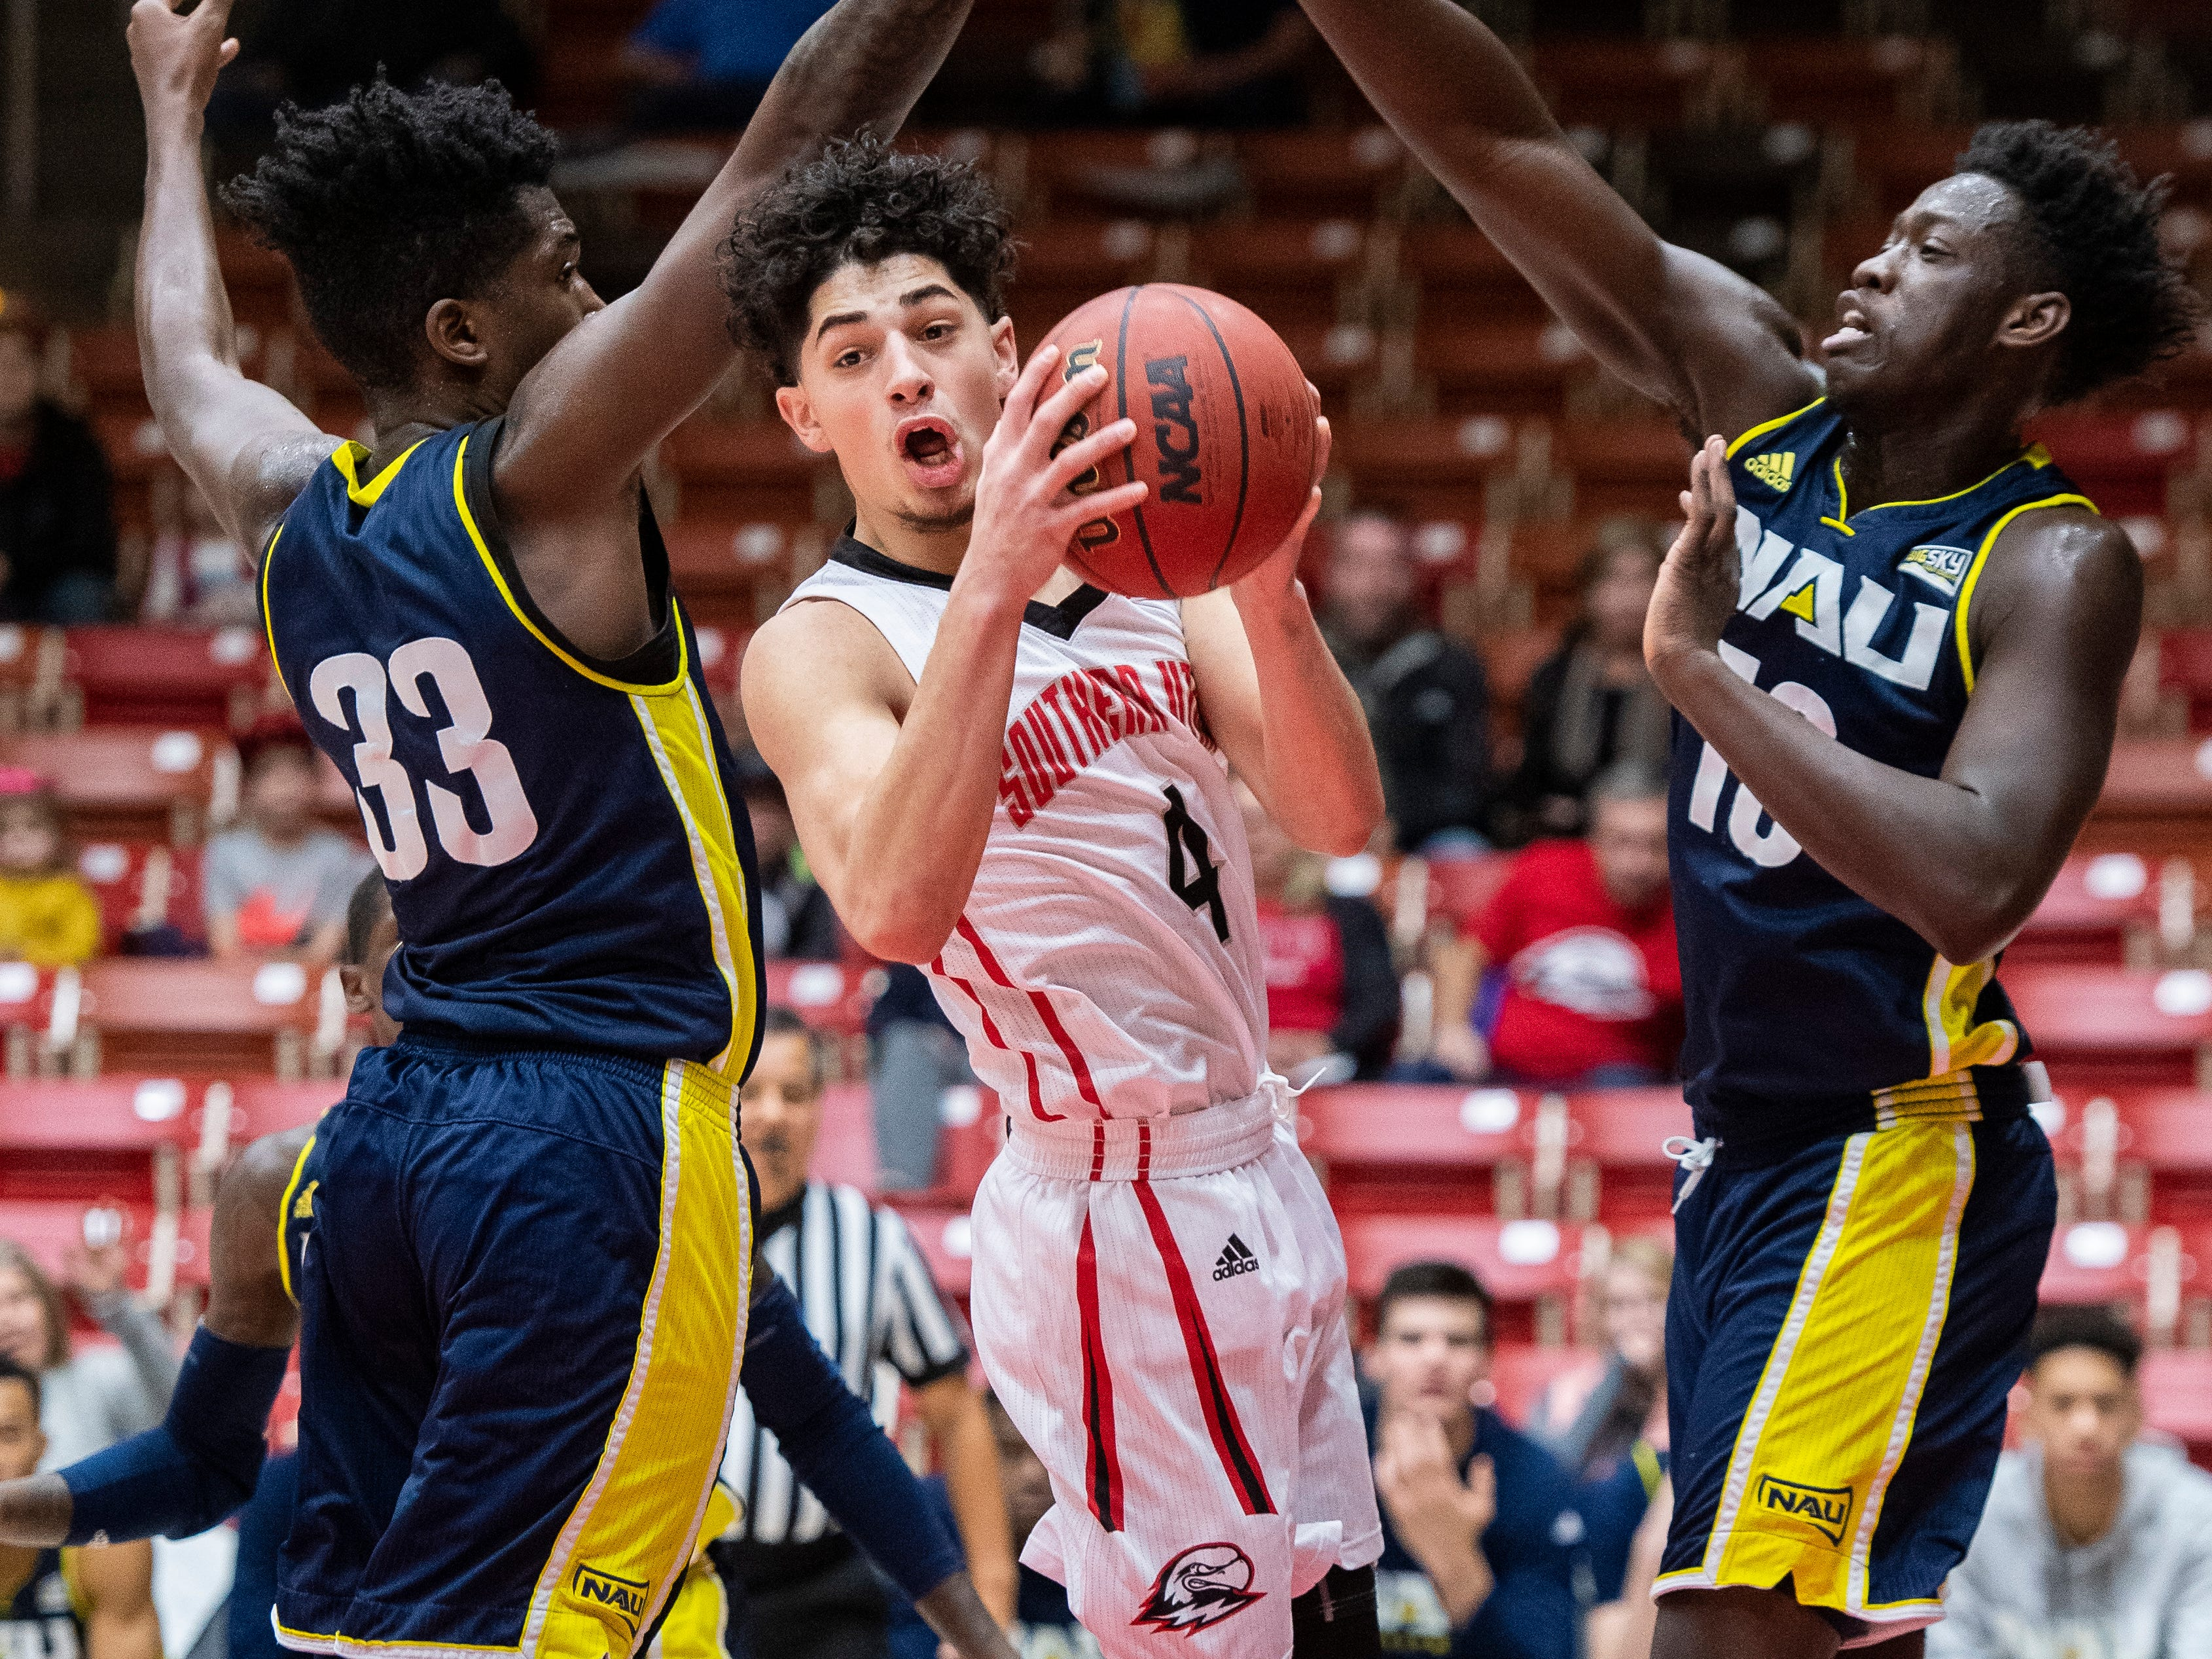 Southern Utah University sophomore Dre Marin (4) sneaks through the Nothern Arizona defense to throw a pass at the America First Event Center Saturday, January 12, 2019. Thanks to Marin scoring a buzzer-beater, SUU won, 84-82.